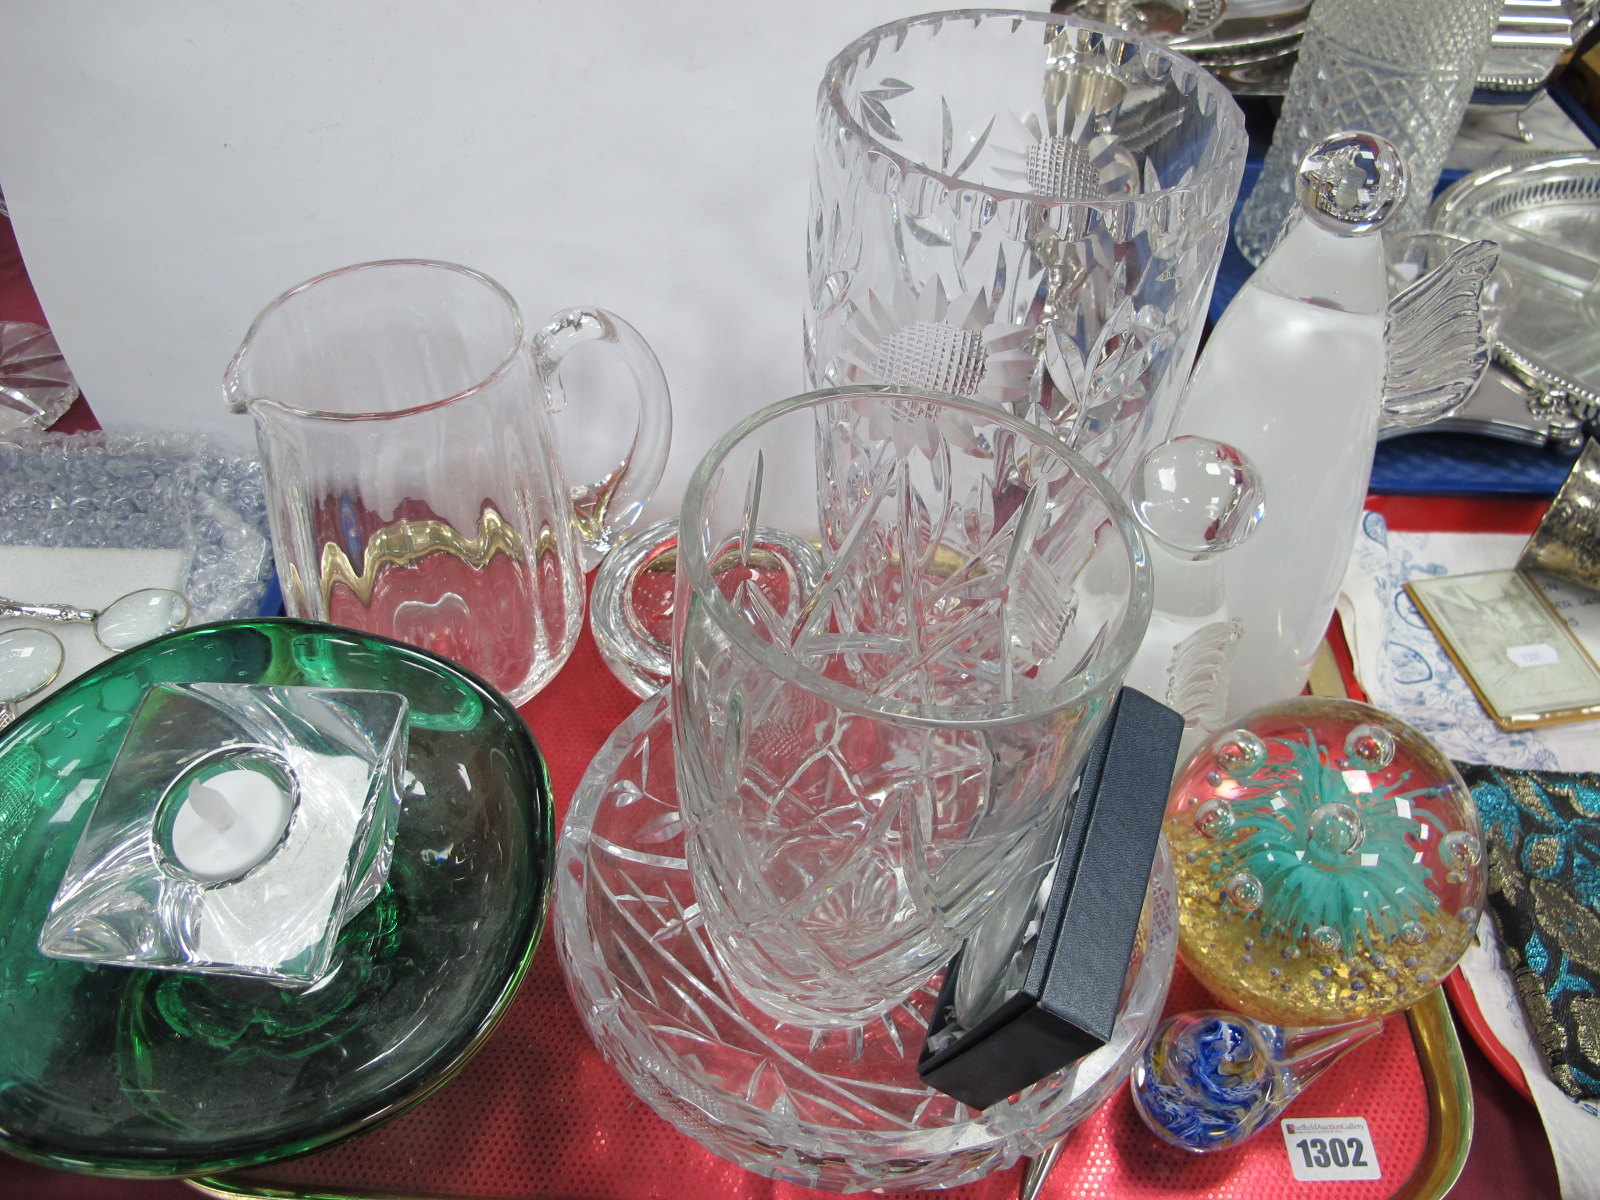 Lot 1302 - A Green Glass Fruit Bowl, having bubble inclusions Orrefors candlestick, other glassware:- One Tray